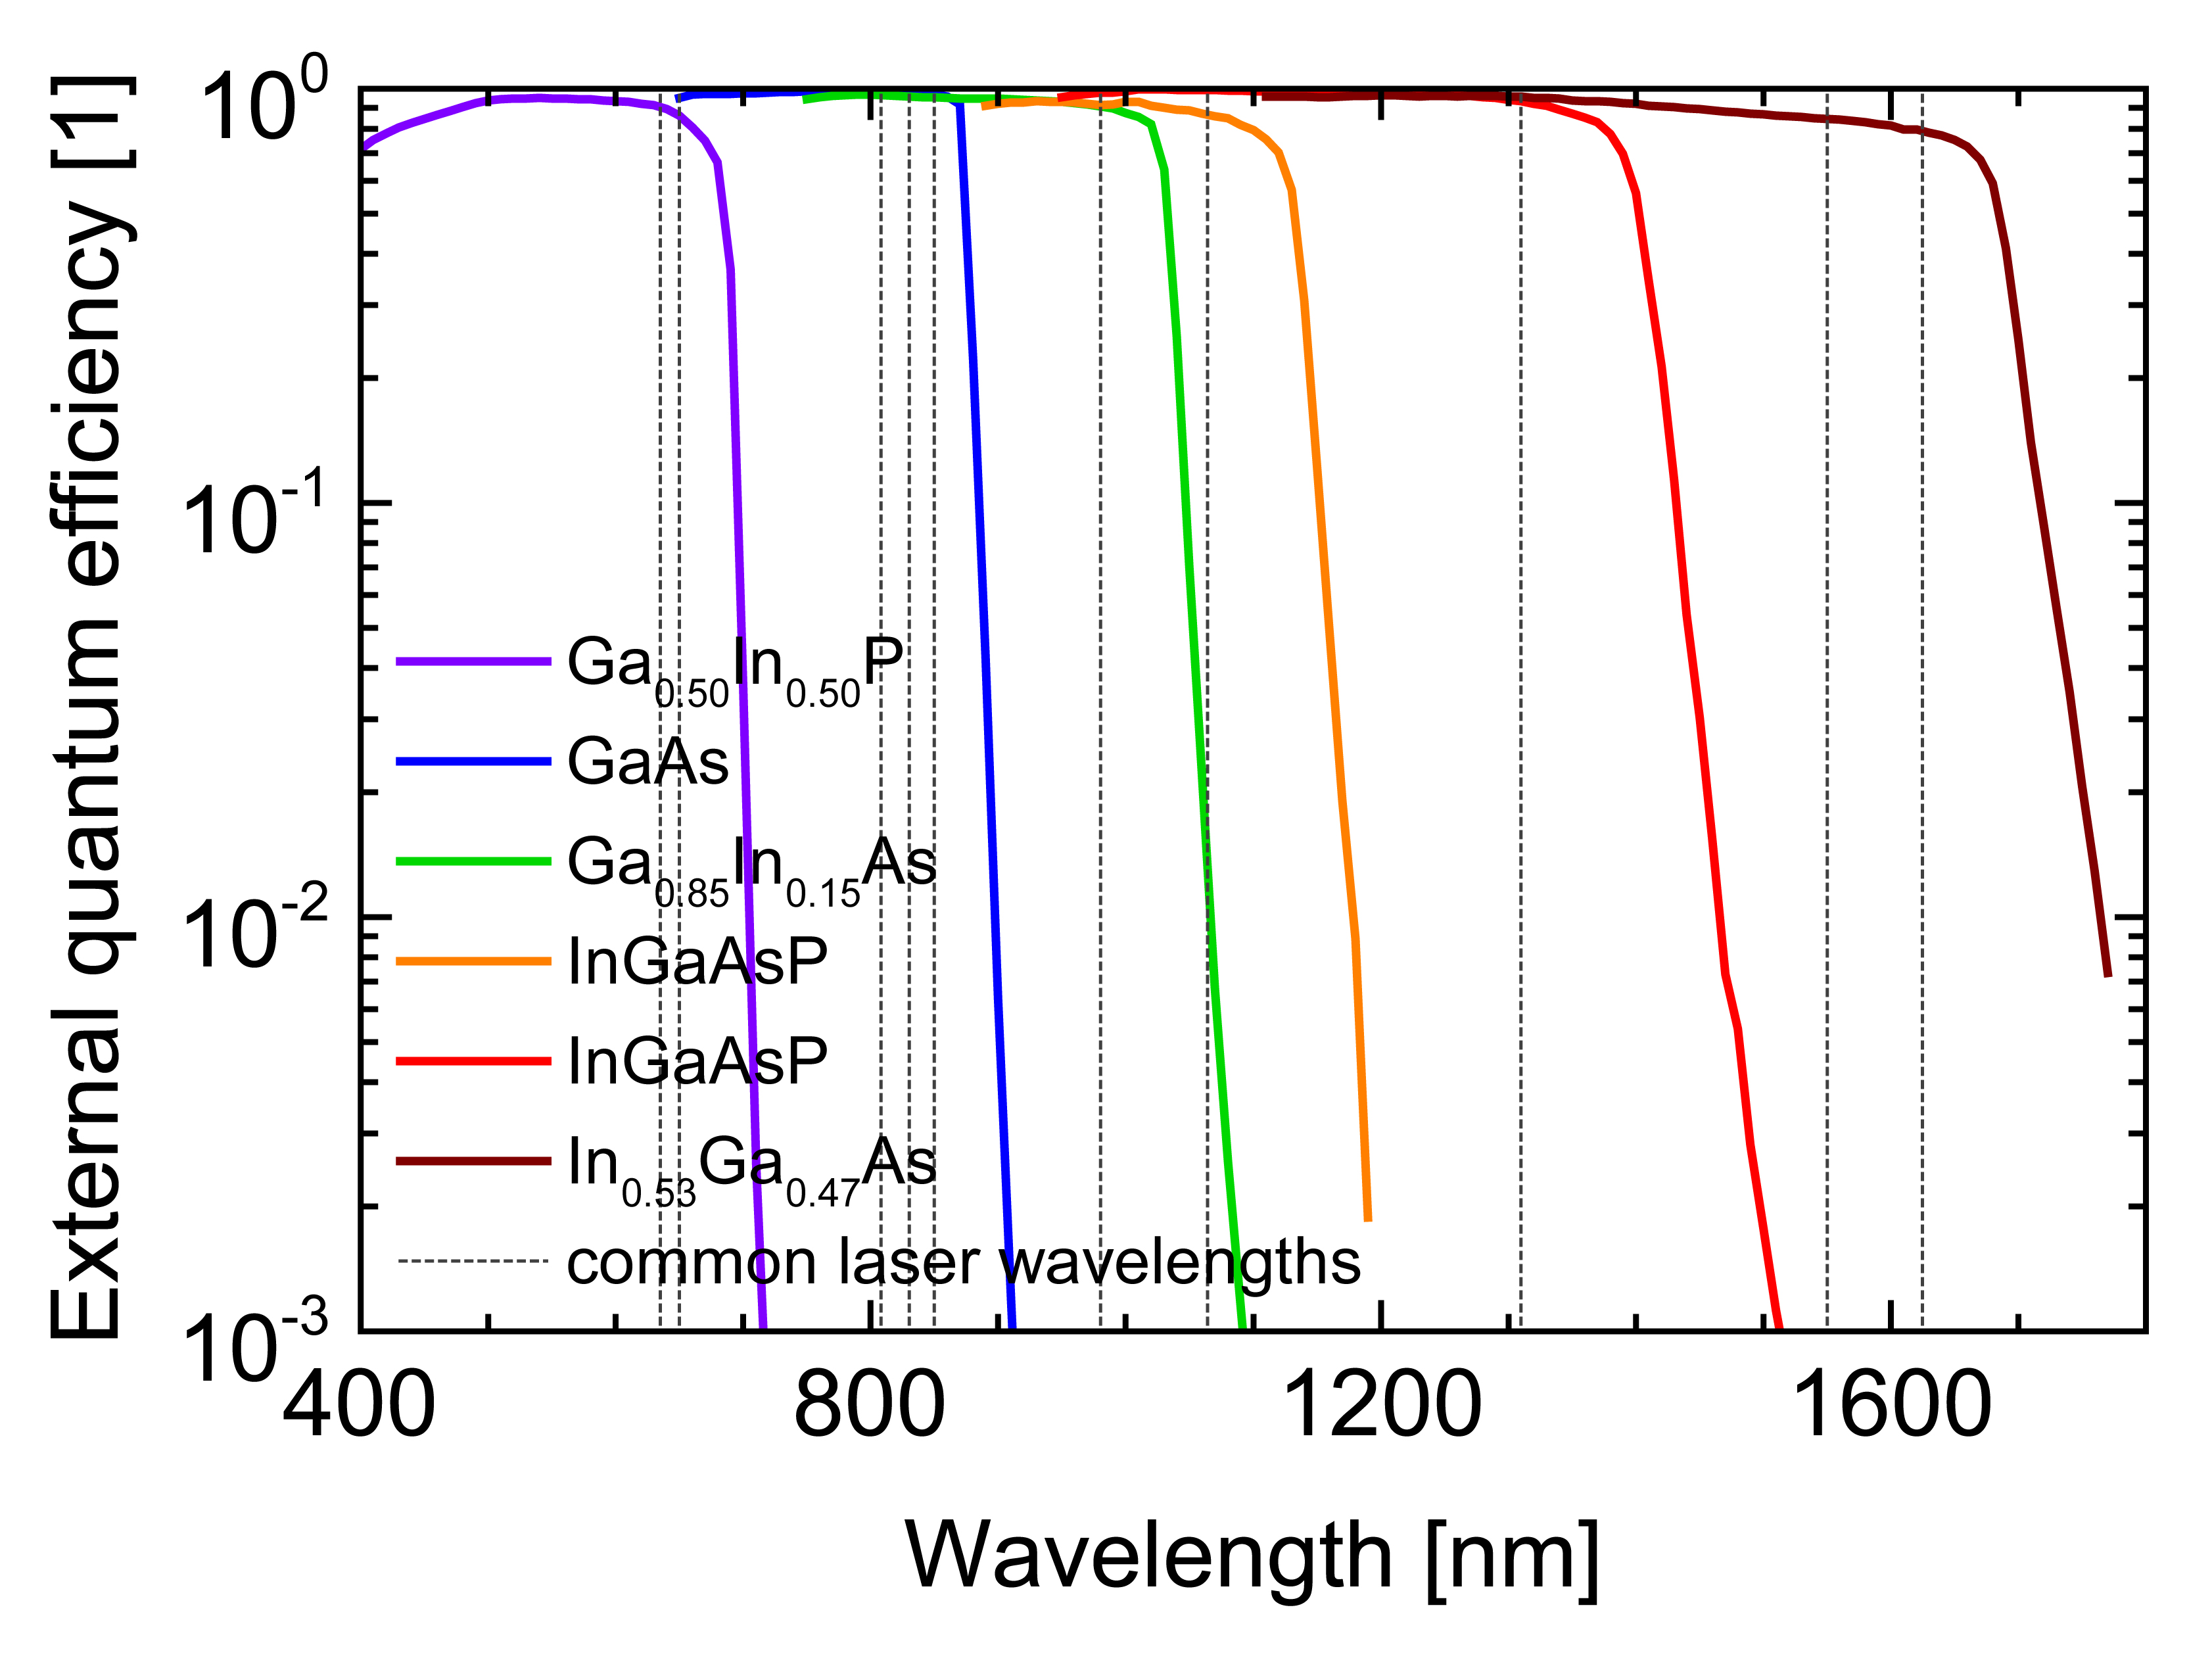 Figure 3: Measured external quantum efficiencies (EQE) as a function of the wavelength for a selection of III-V compound semiconductor photovoltaic cells (colored lines) realized at Fraunhofer ISE. Typical laser wavelengths are shown as dotted lines.